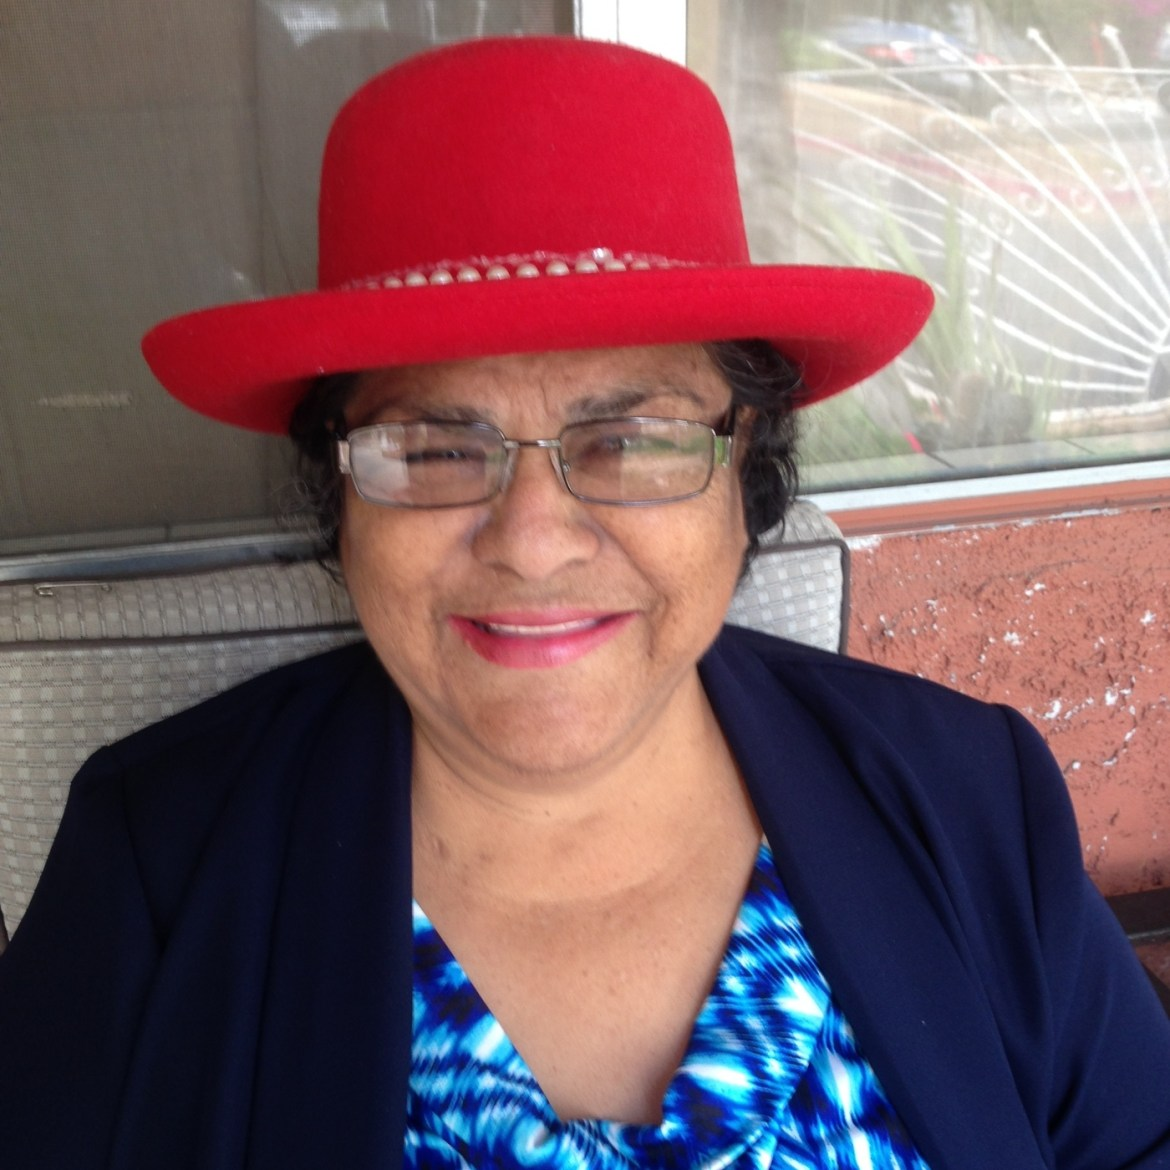 Maria Angelica Mares, of Sun Valley, Calif., died at the age of 61.